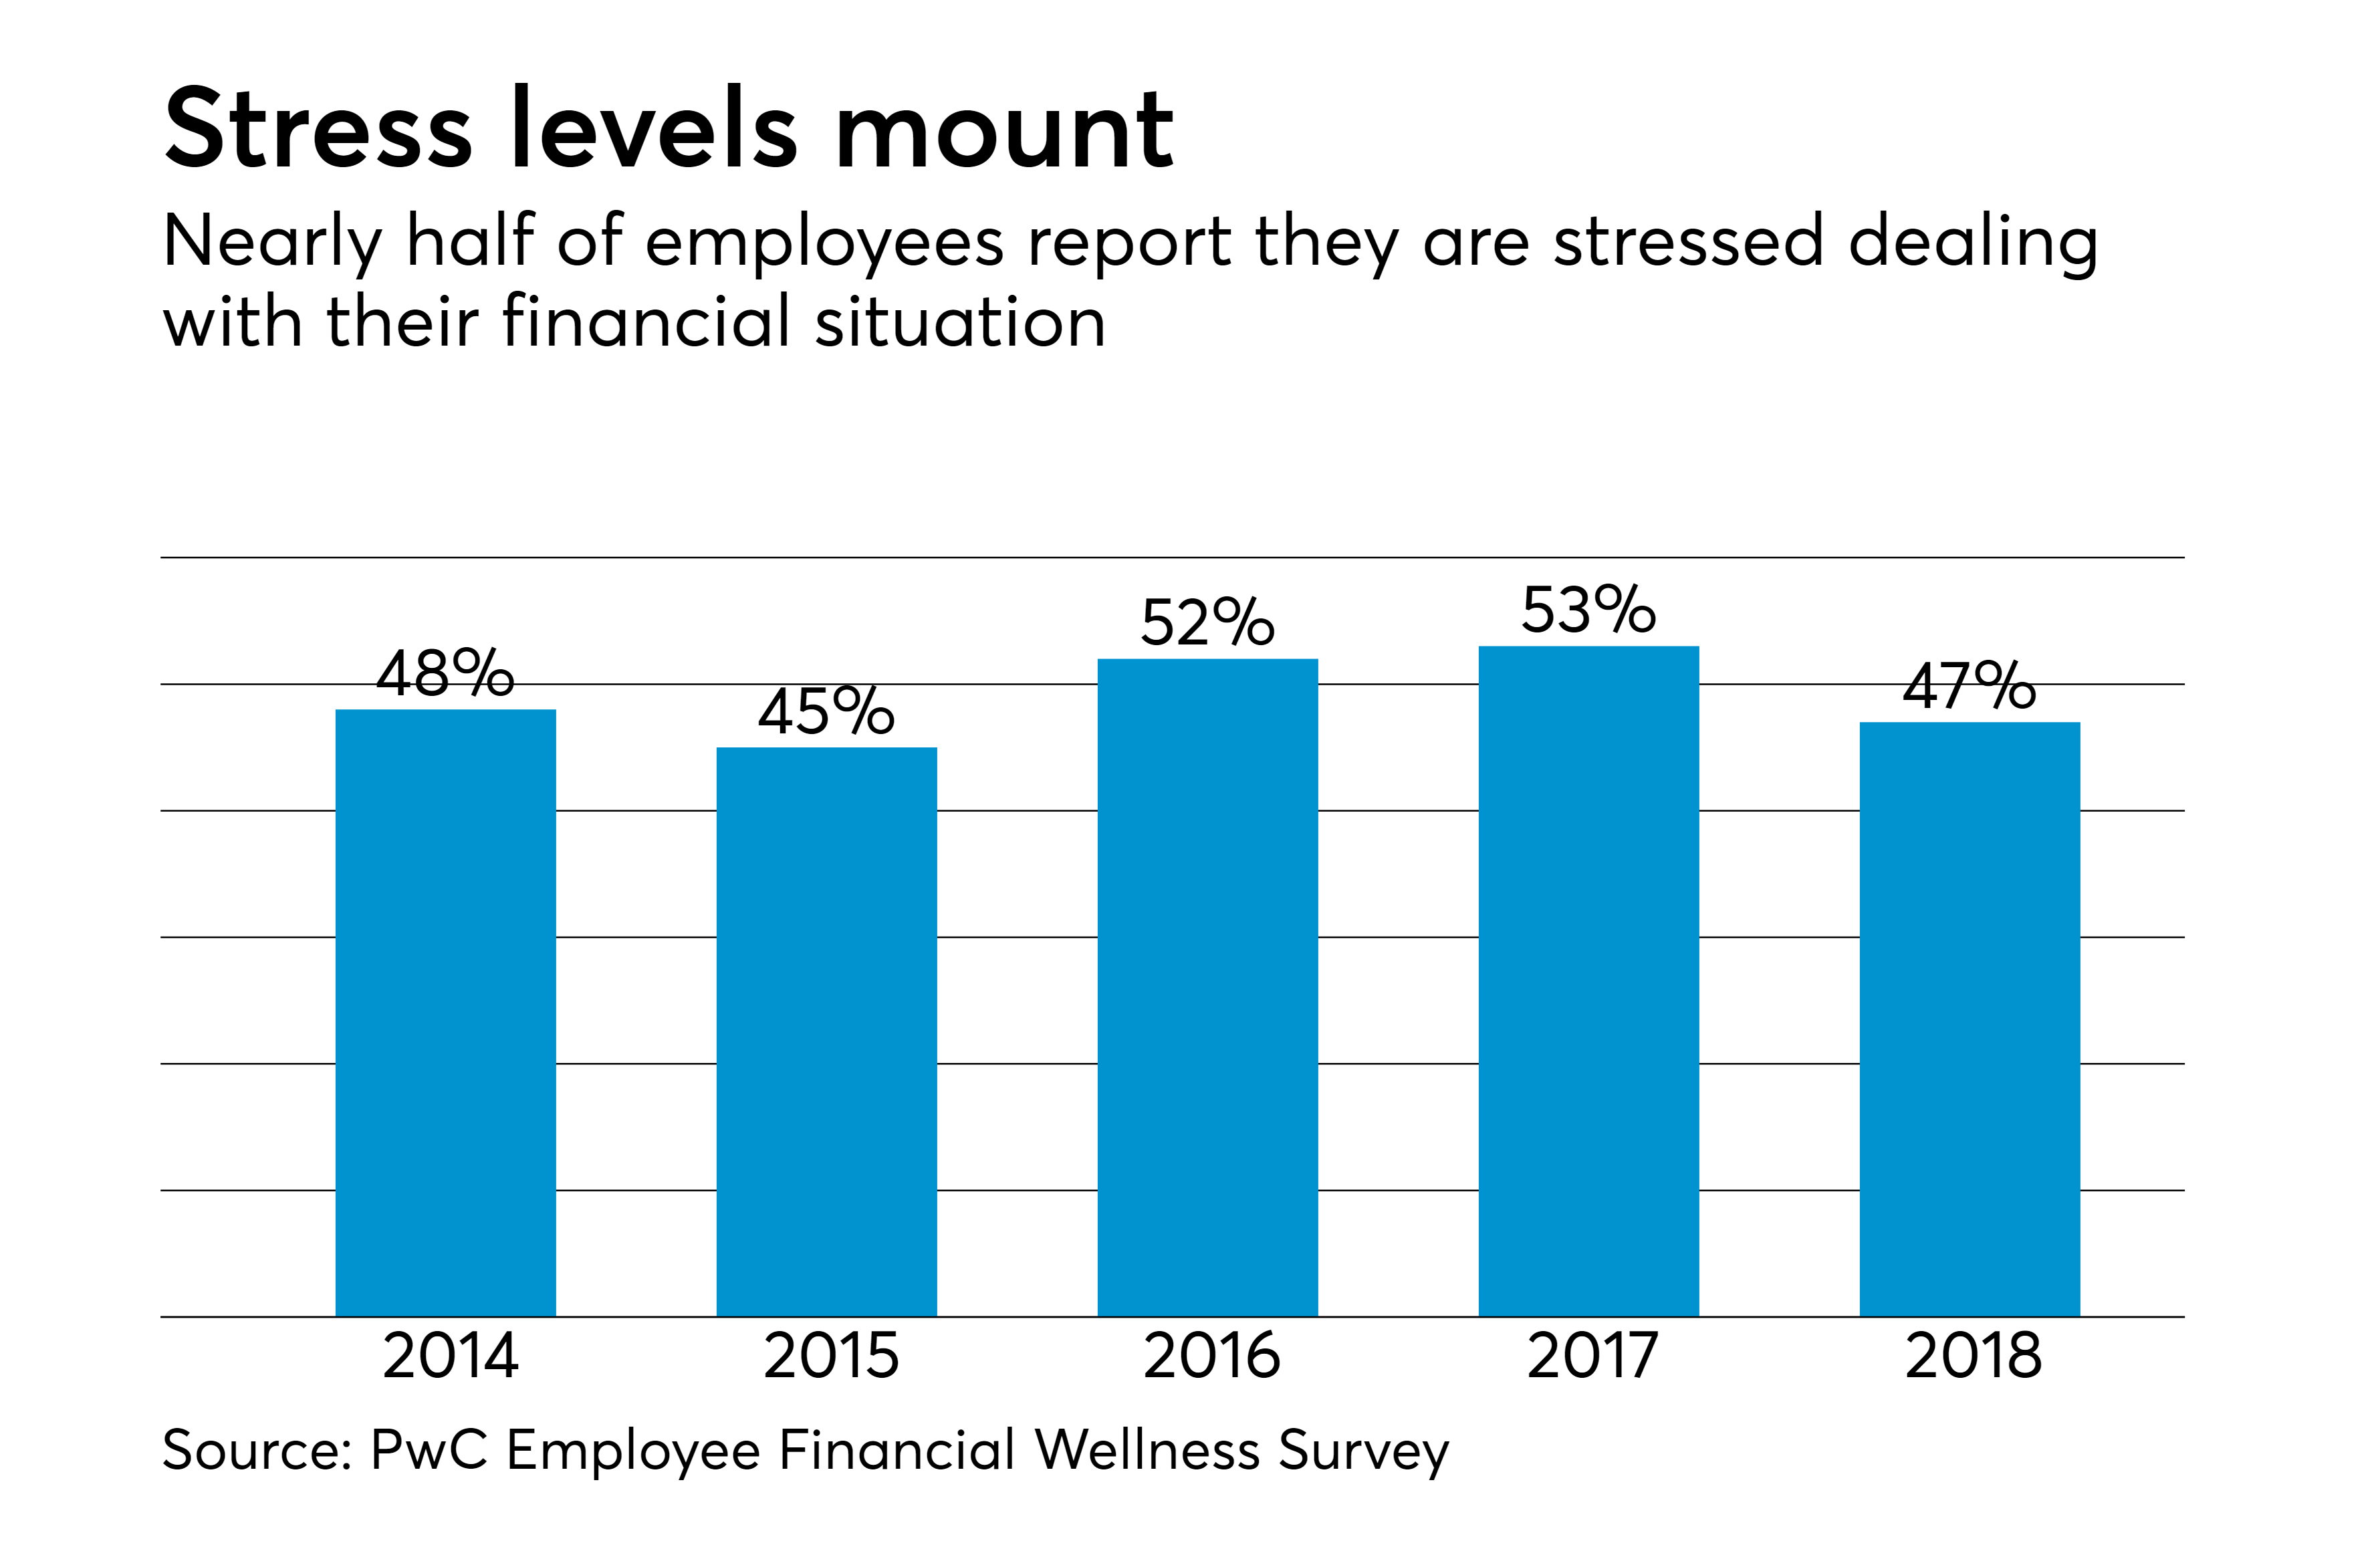 https://assets.sourcemedia.com/1f/5b/170551404438bbf4e700260cf68d/at-052218-employeefinancialstress.png